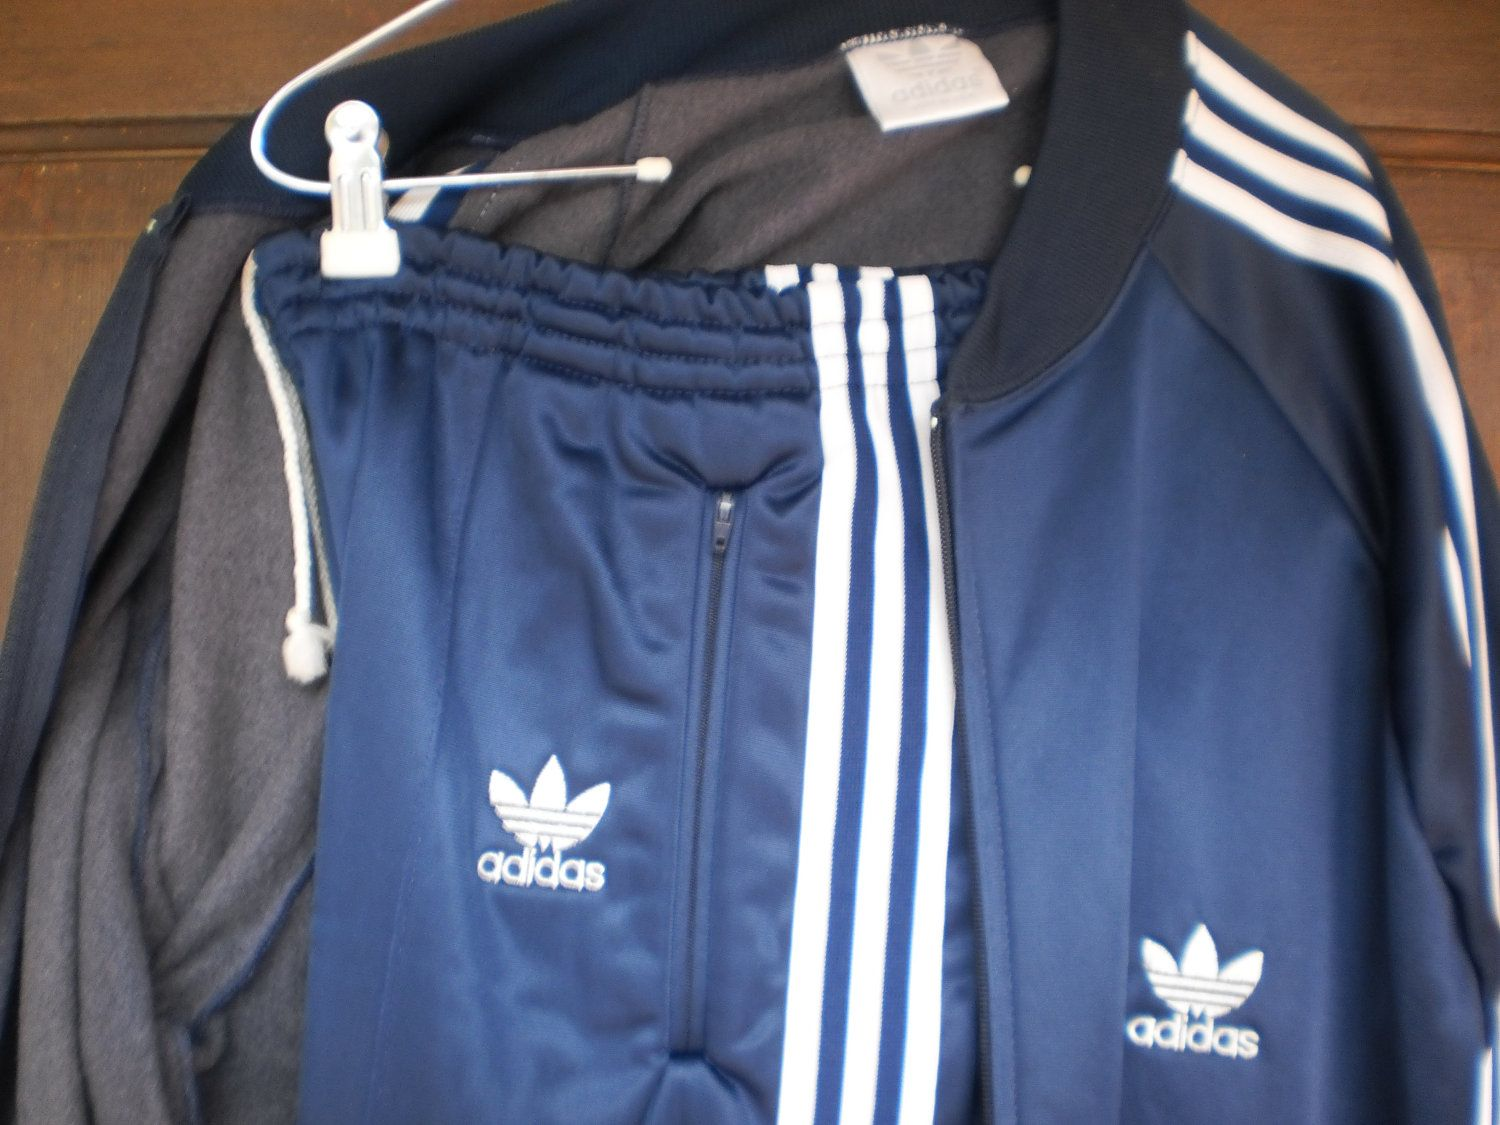 0867c6df524a3 Vintage ADIDAS Trefoil Striped Shoulders Athletic Warm Up Suit ...